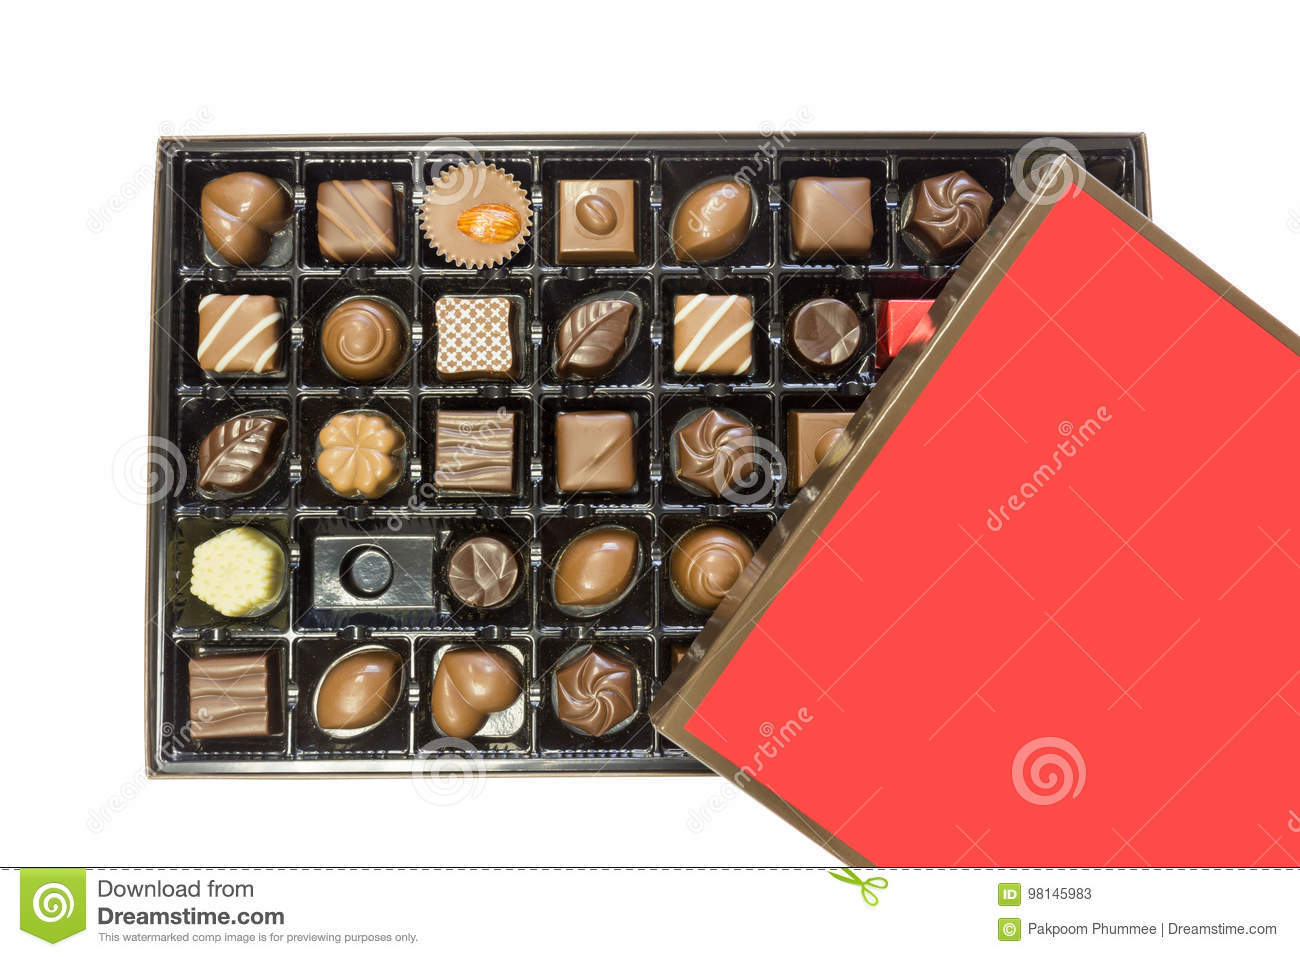 Box Of Delicious Chocolates Box With Red Lid Isolated On White